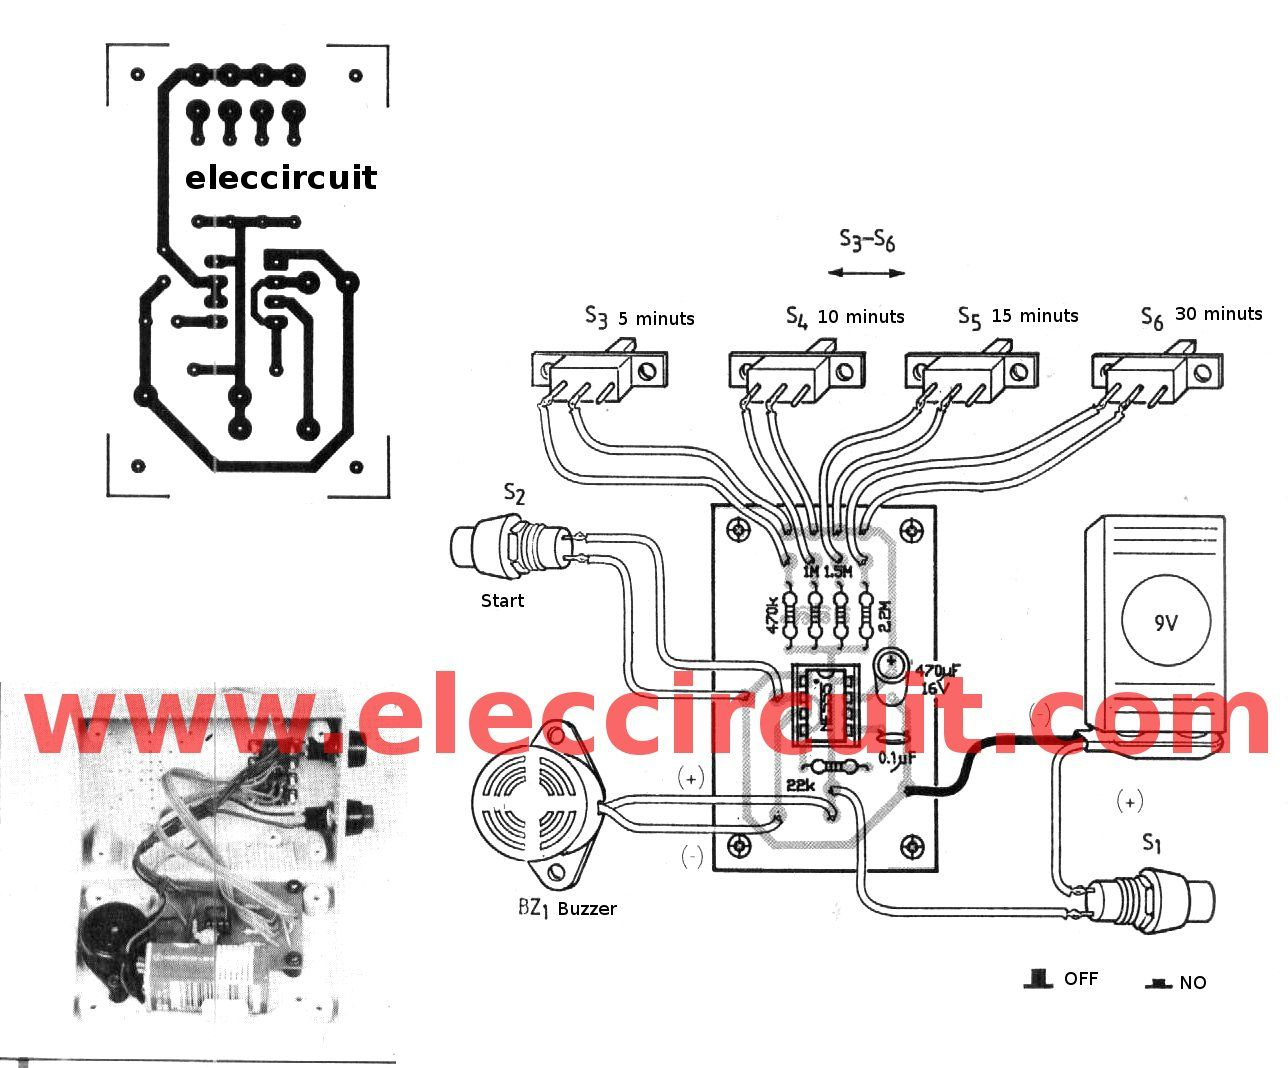 the PCB layout of 5-30 minuts timer alarm circuit using IC555 ...